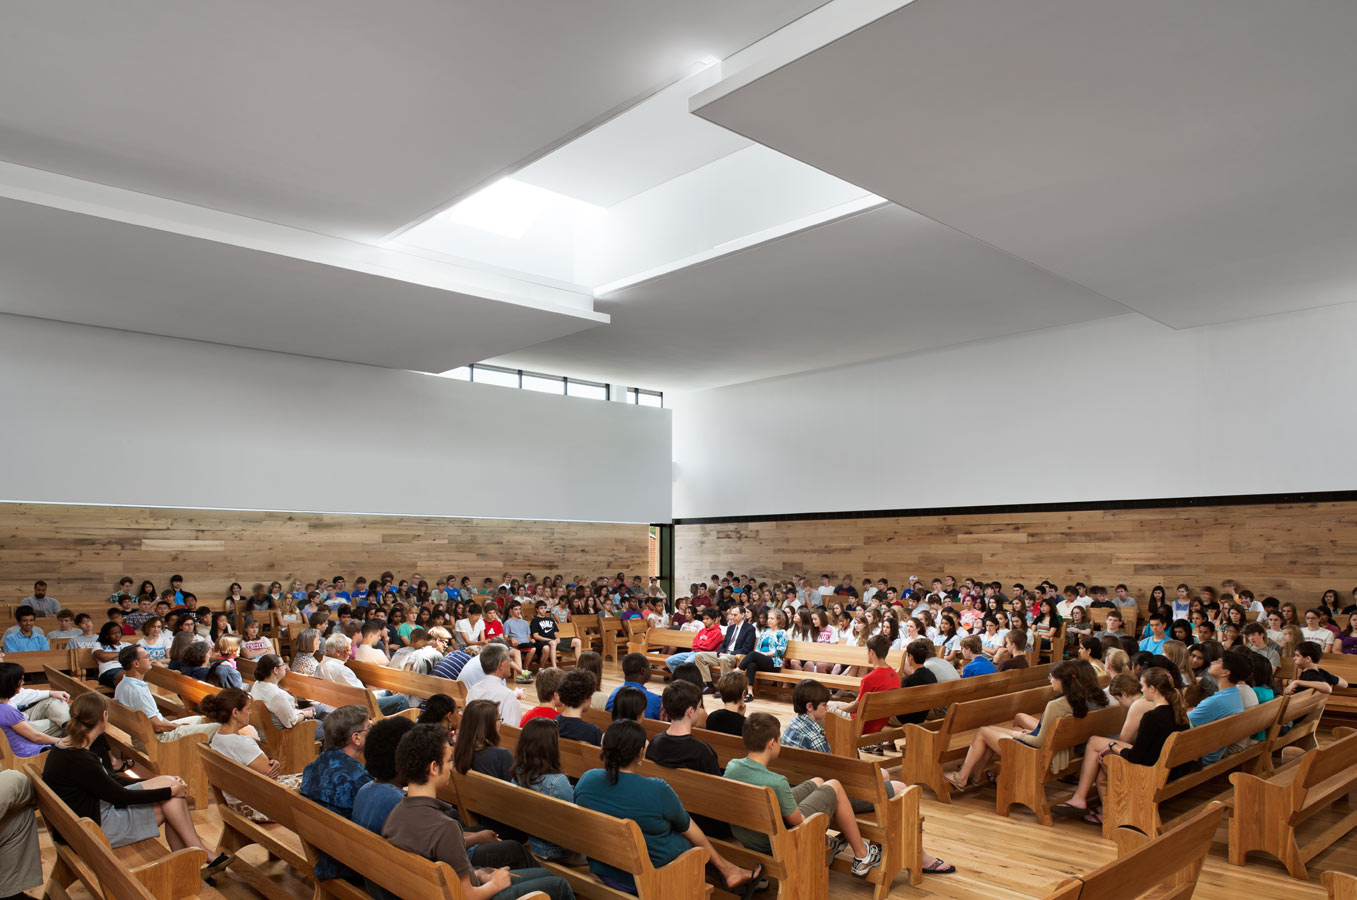 <p>The Meeting House is designed to filter light, views, and sounds from the surge of activity around the center of the campus. Panels on the ceiling are arranged in a pinwheel pattern around a central skylight, a void of light around which form and order are created. <br><small>&copy; Michael Moran/OTTO</small></p>